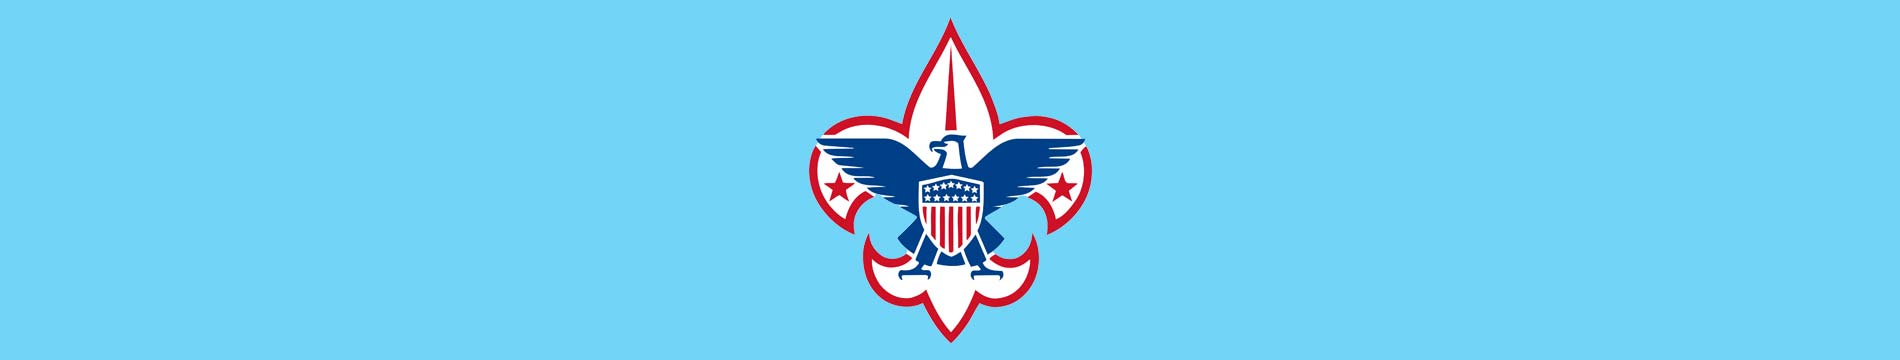 Boy Scouts Engineering Day